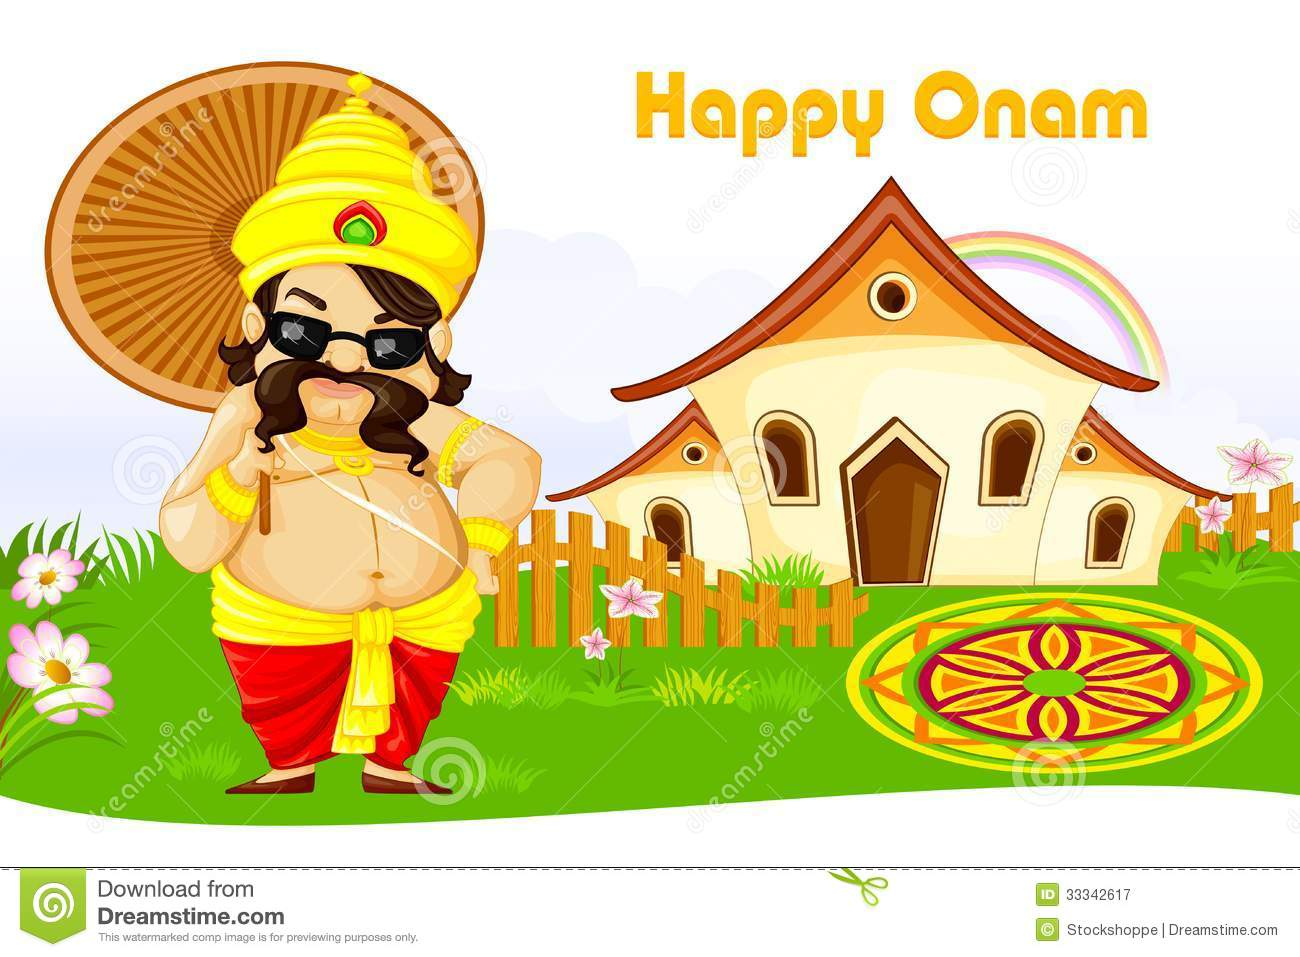 Onam Greetings Stock Vector Illustration Of Holiday 33342617